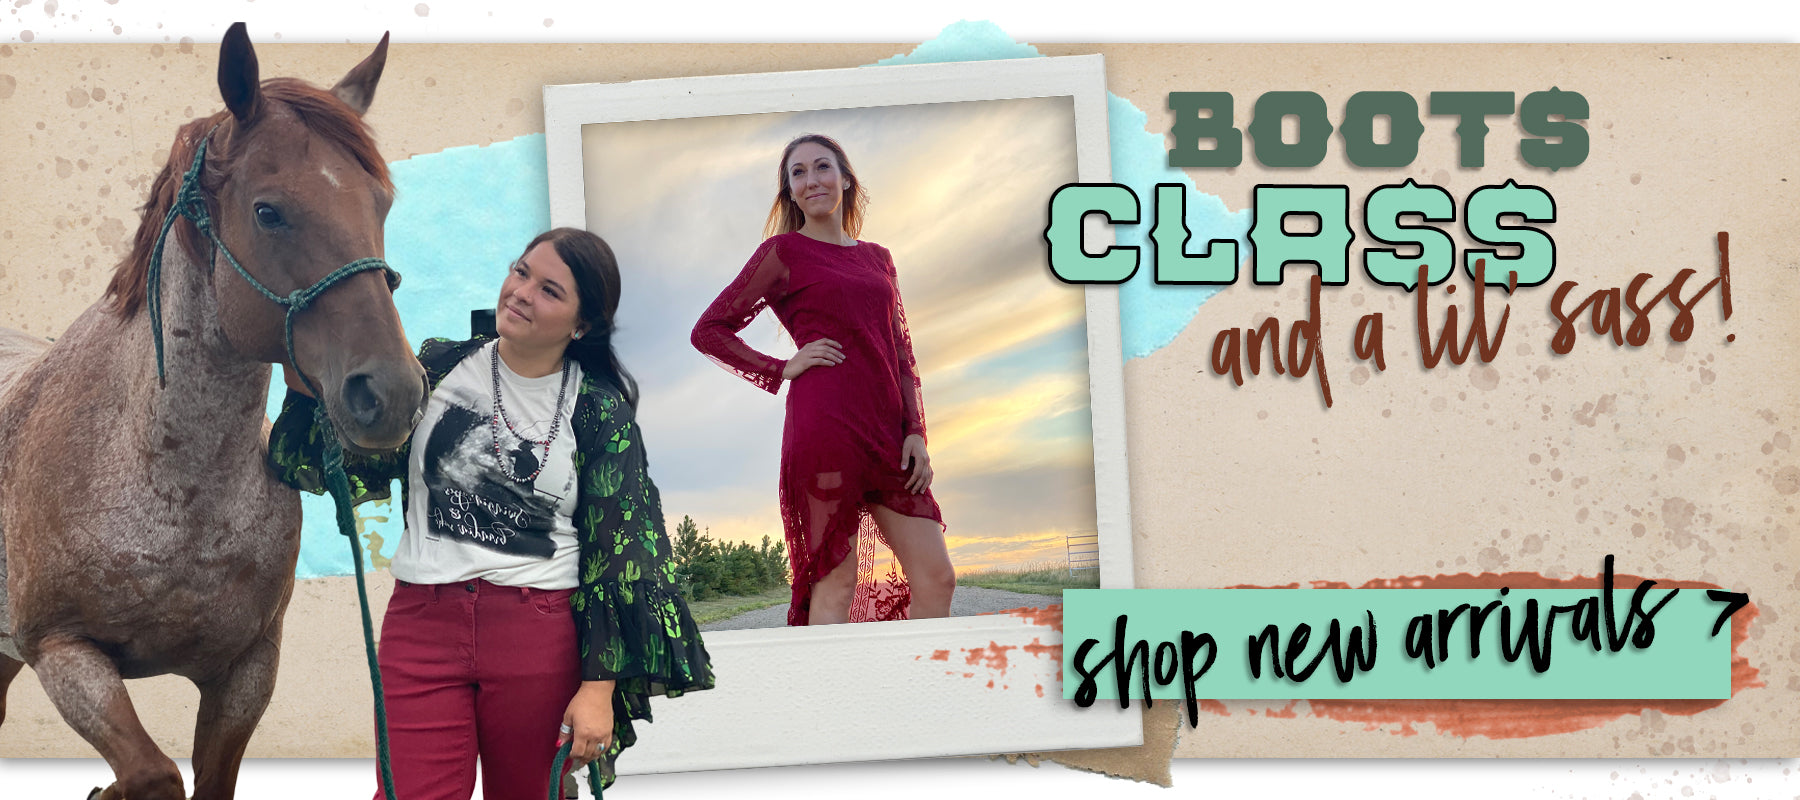 Boots class and a bit of sass shop new arrivals